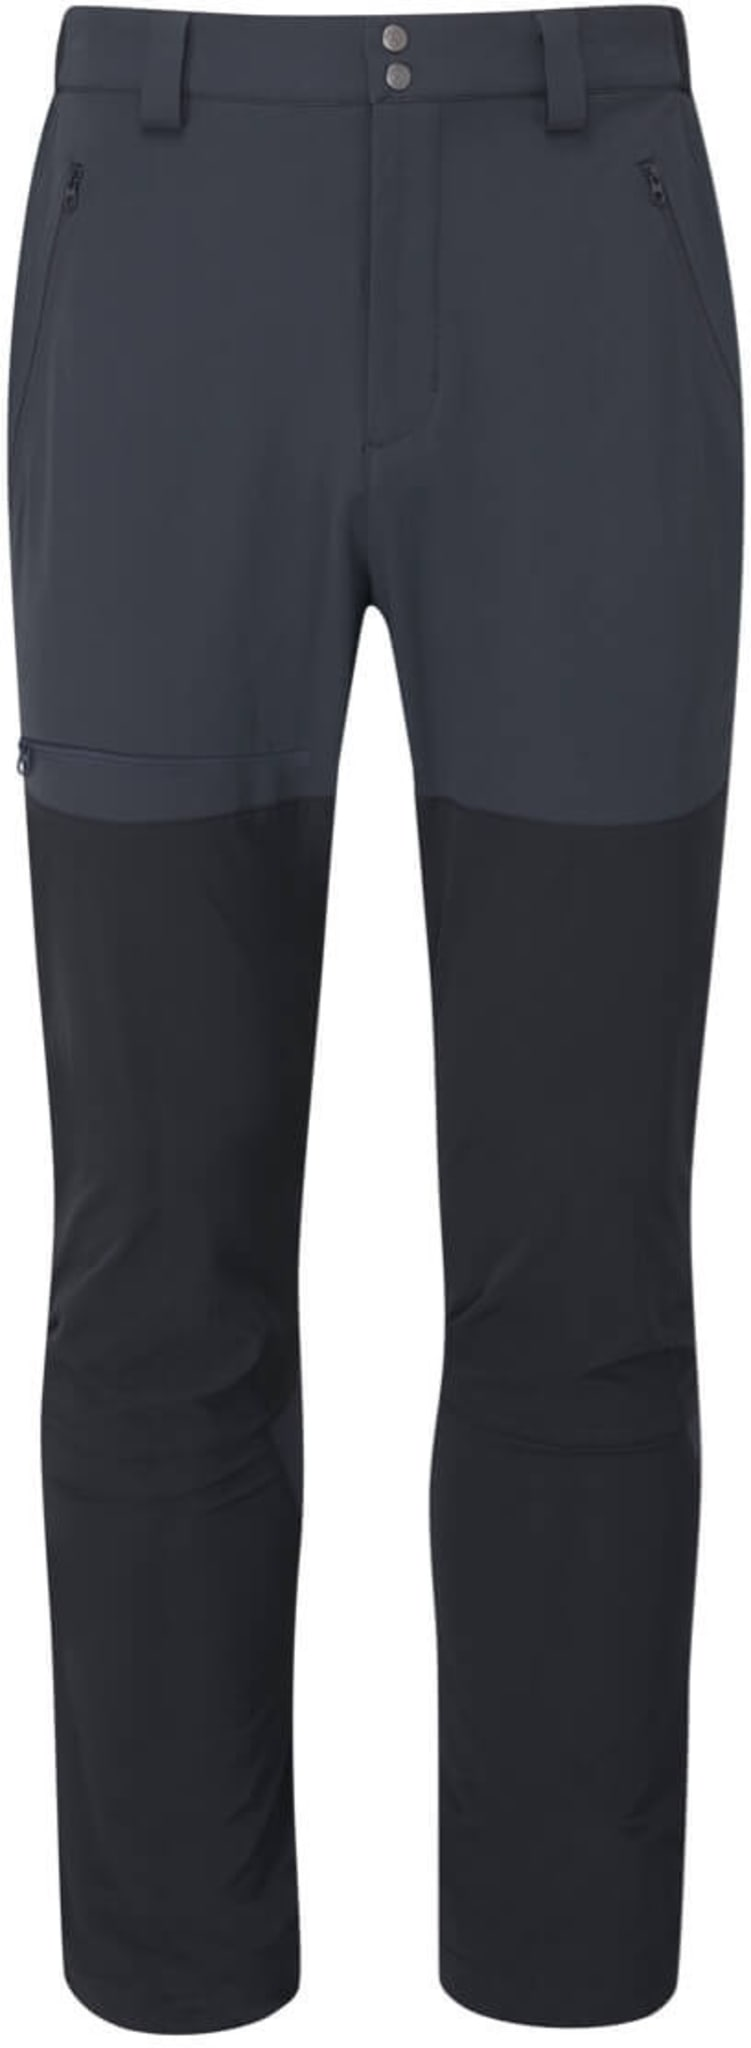 Torque Mountain Pants Ms